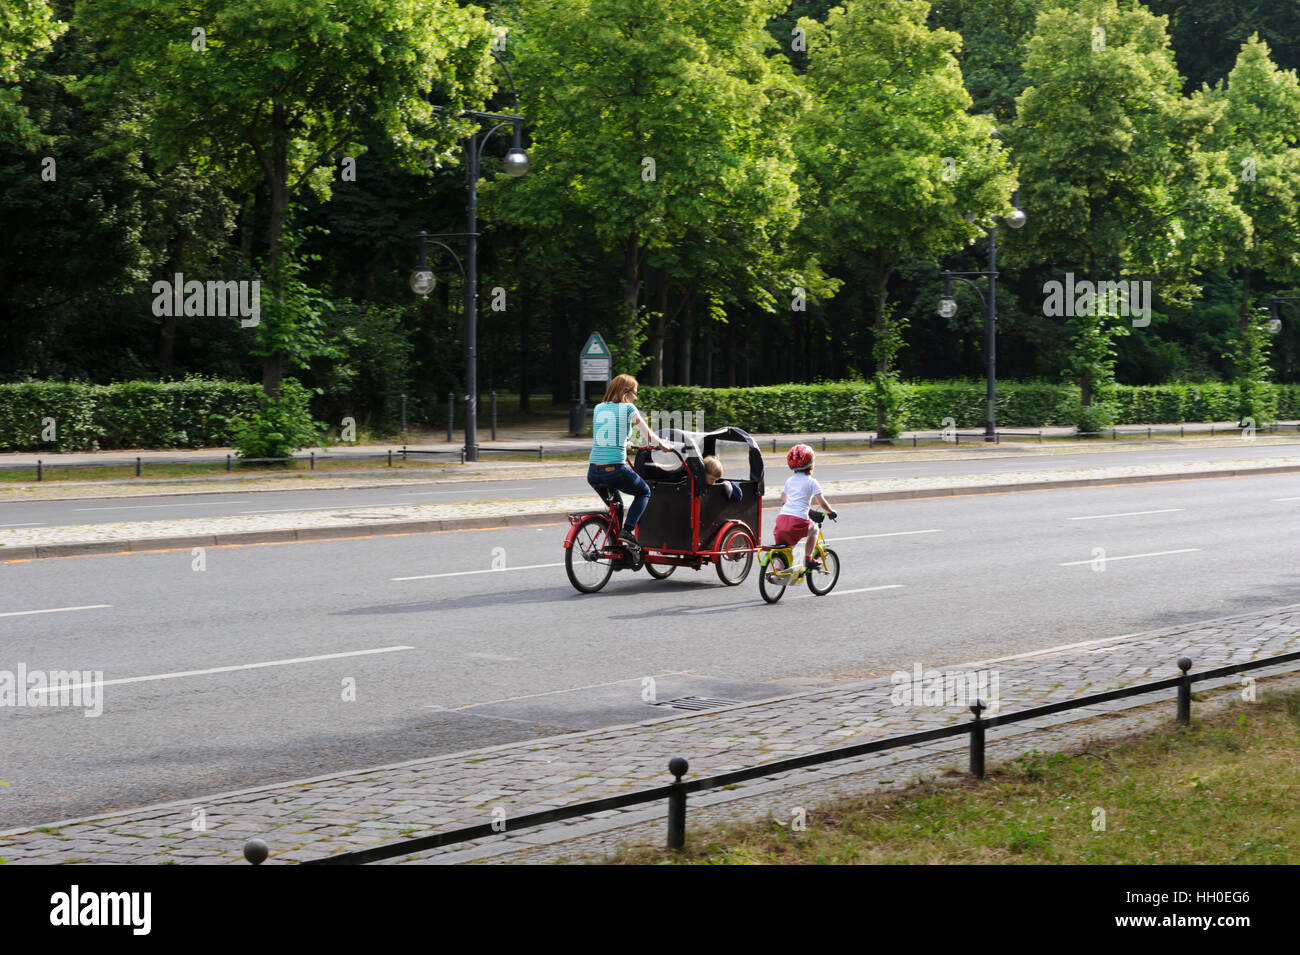 A mother and two children traveling by bicycles on the road by the Tiergarten Park in Berlin, Germany. Stock Photo